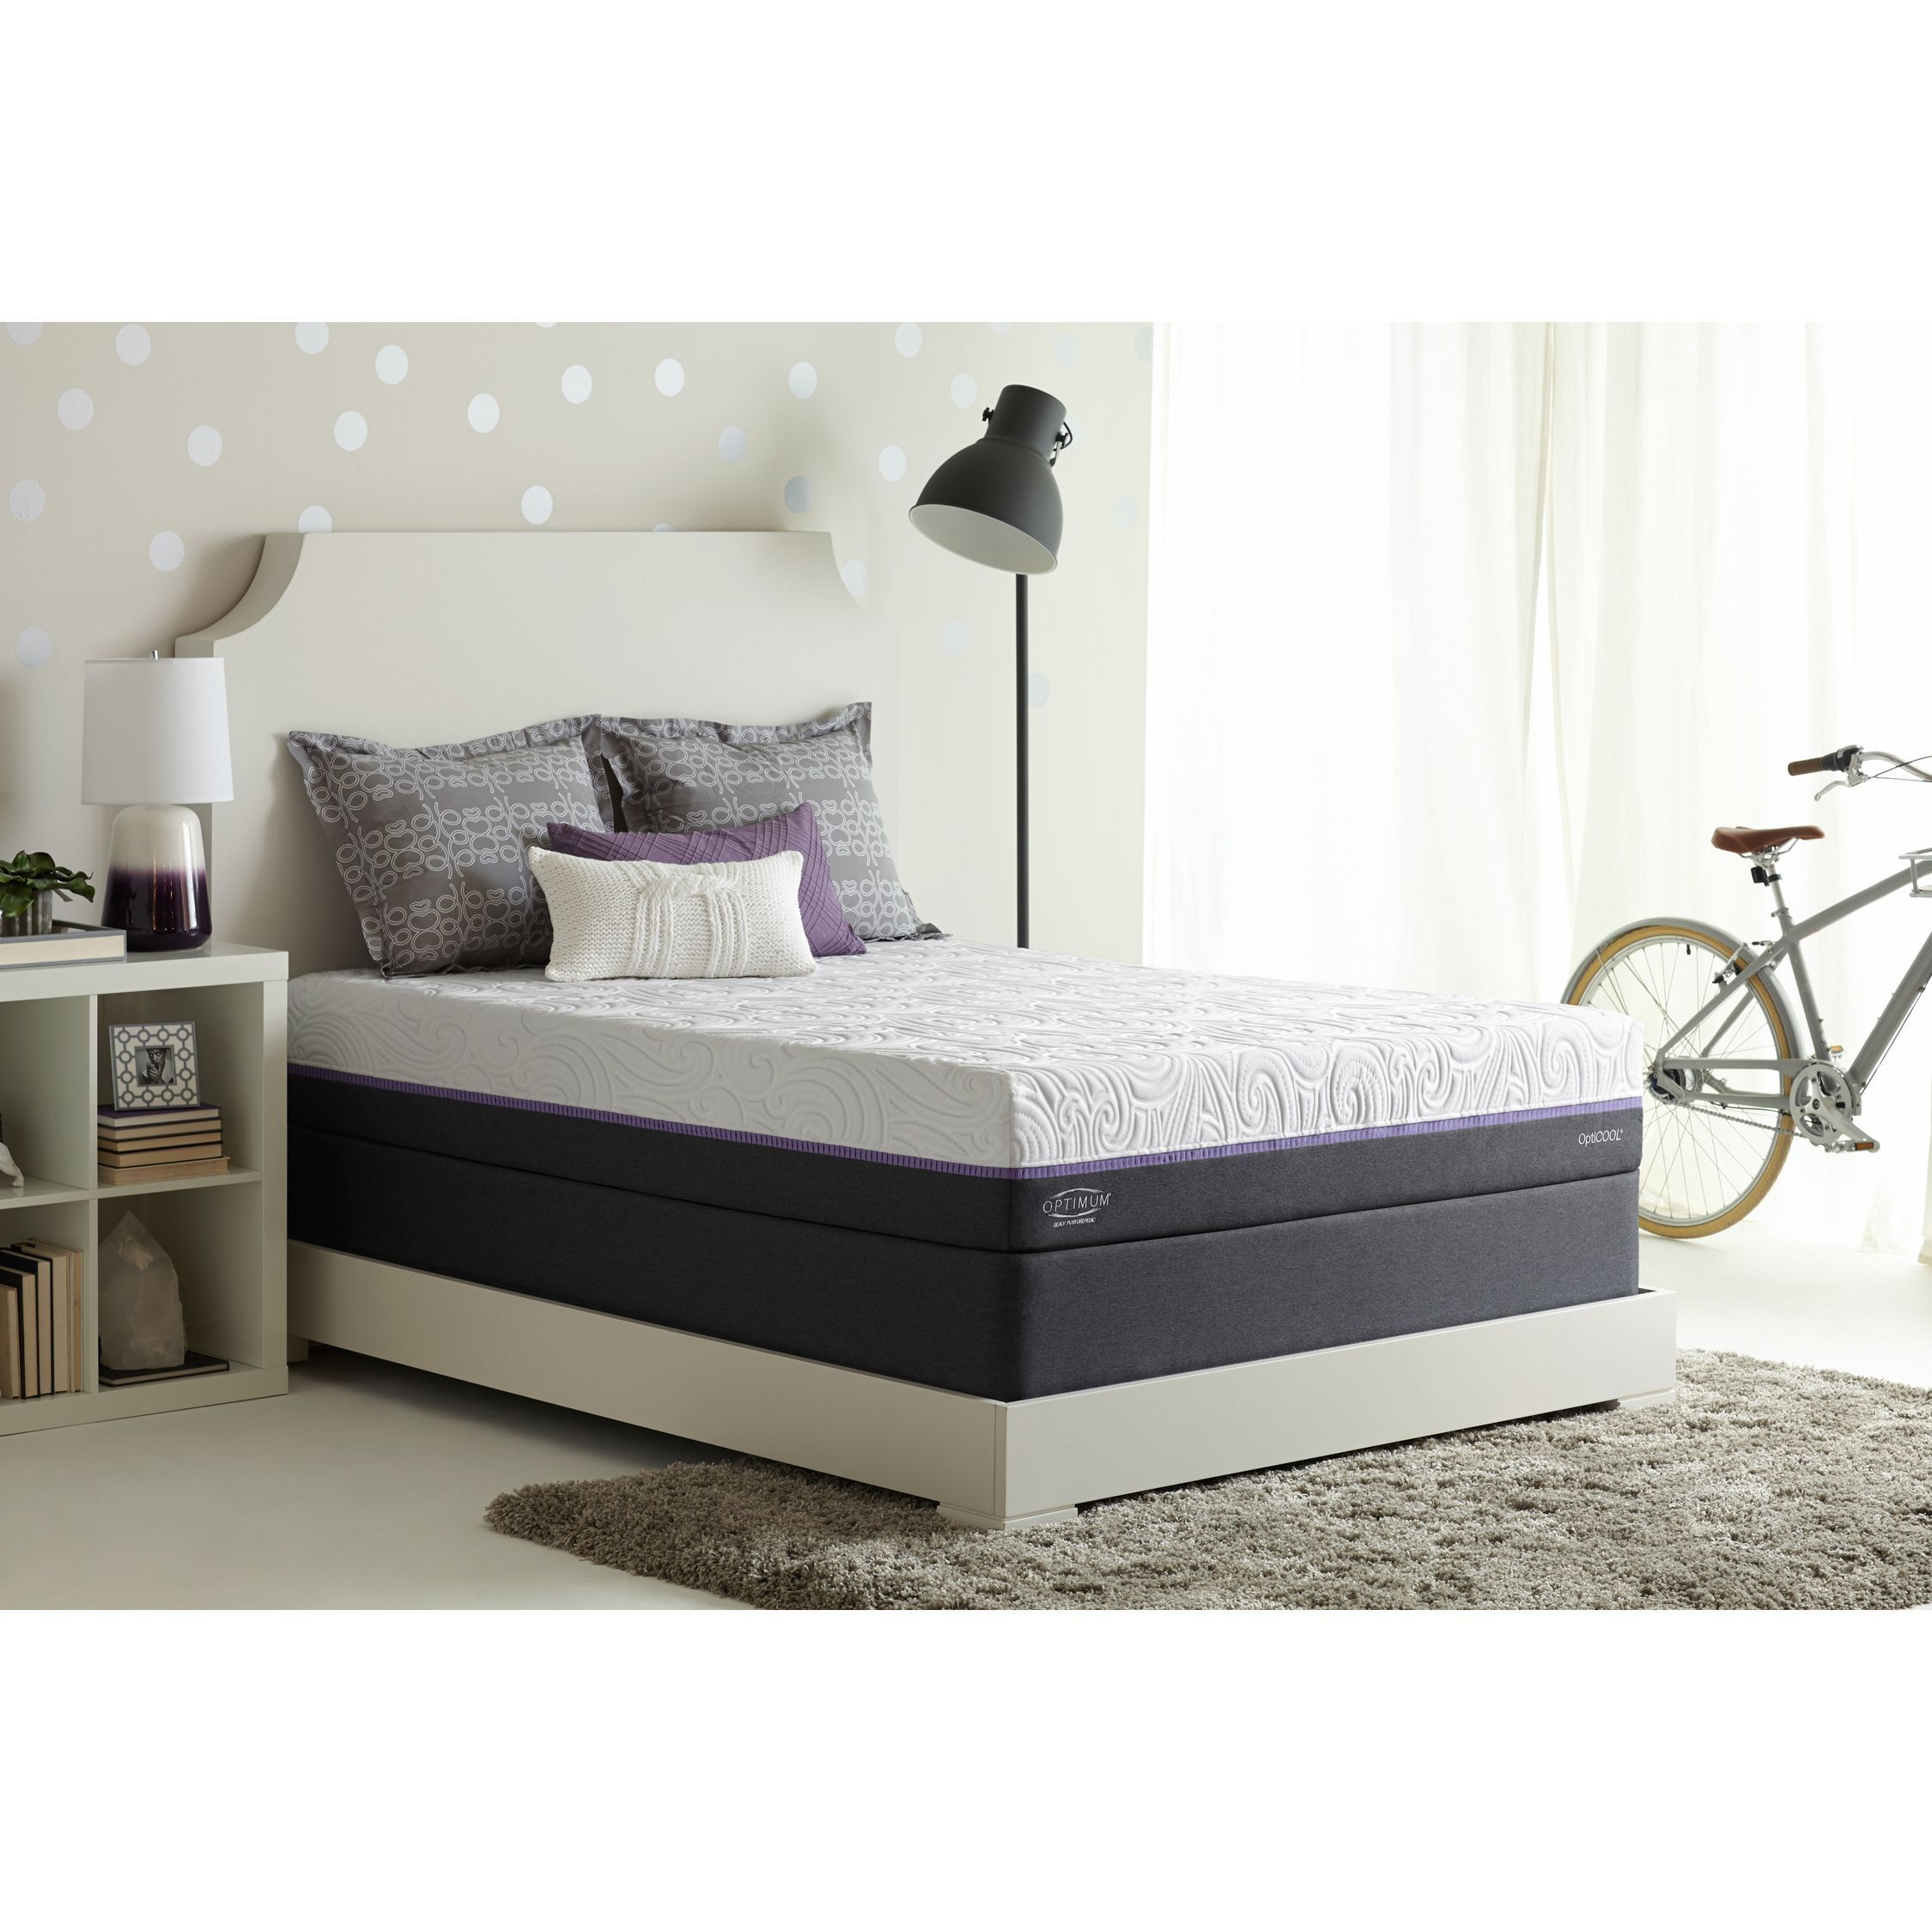 cheap memory sealy double and king best home restonic foam stores beautiful matress posturepedic price mattresses design affordable sets discount bed size beds mattress most